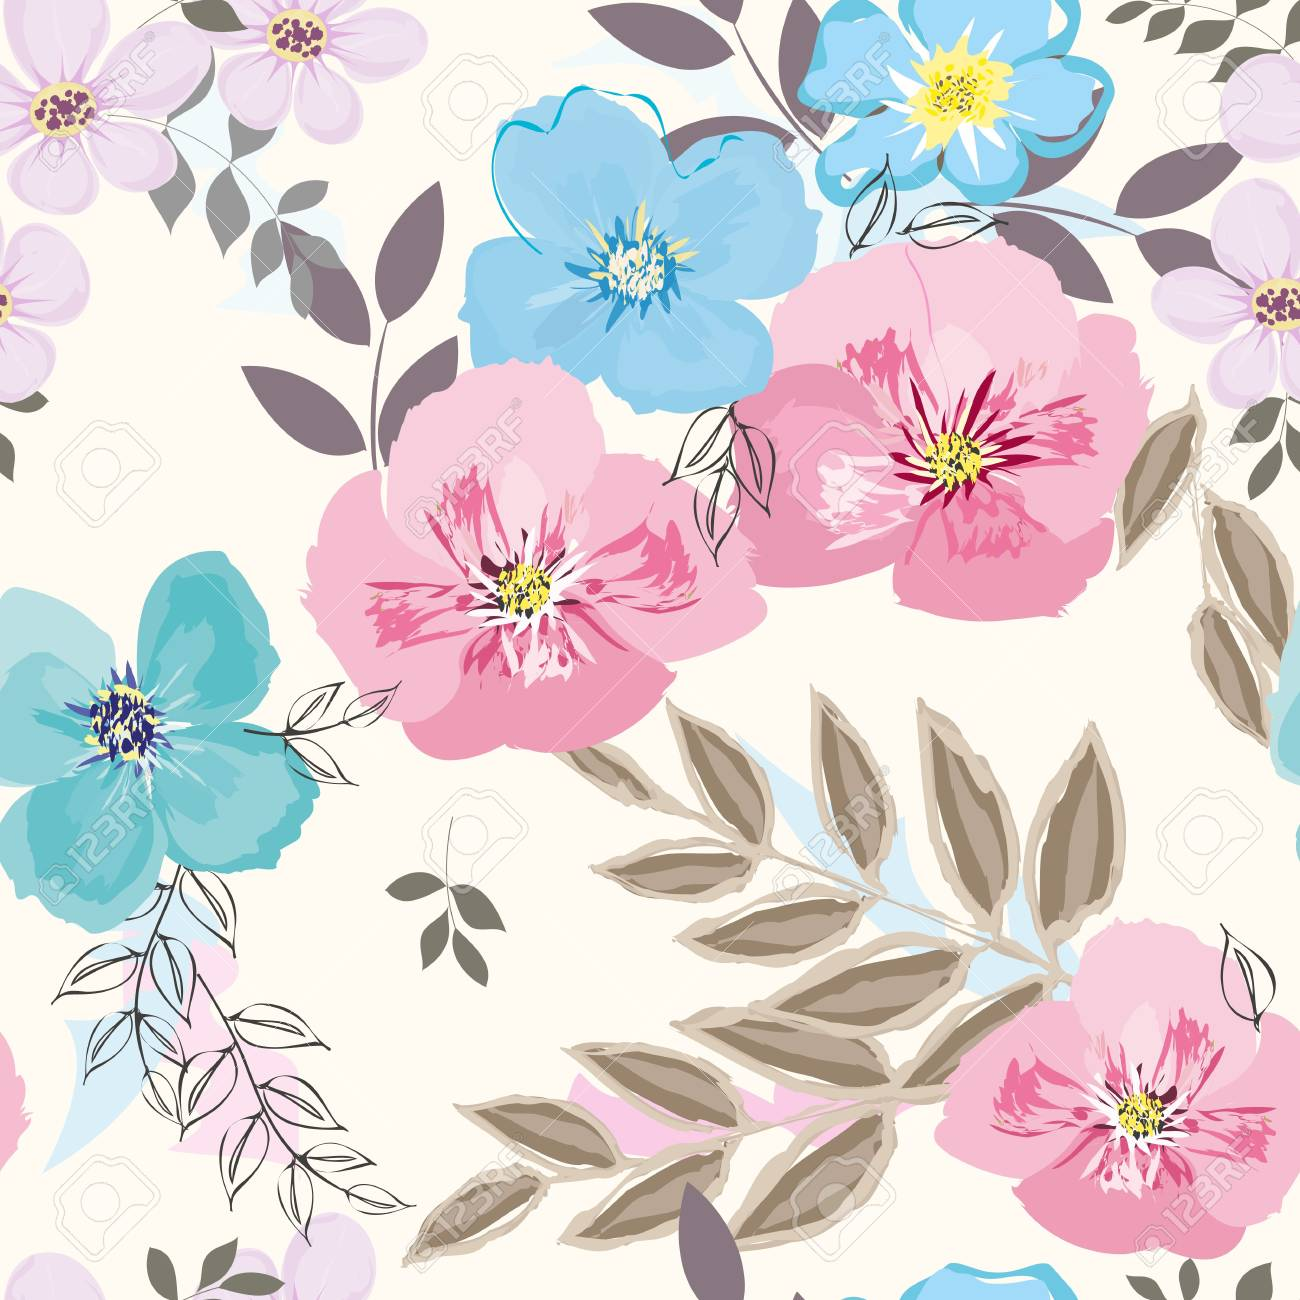 Abstract flower seamless pattern background - 95898098